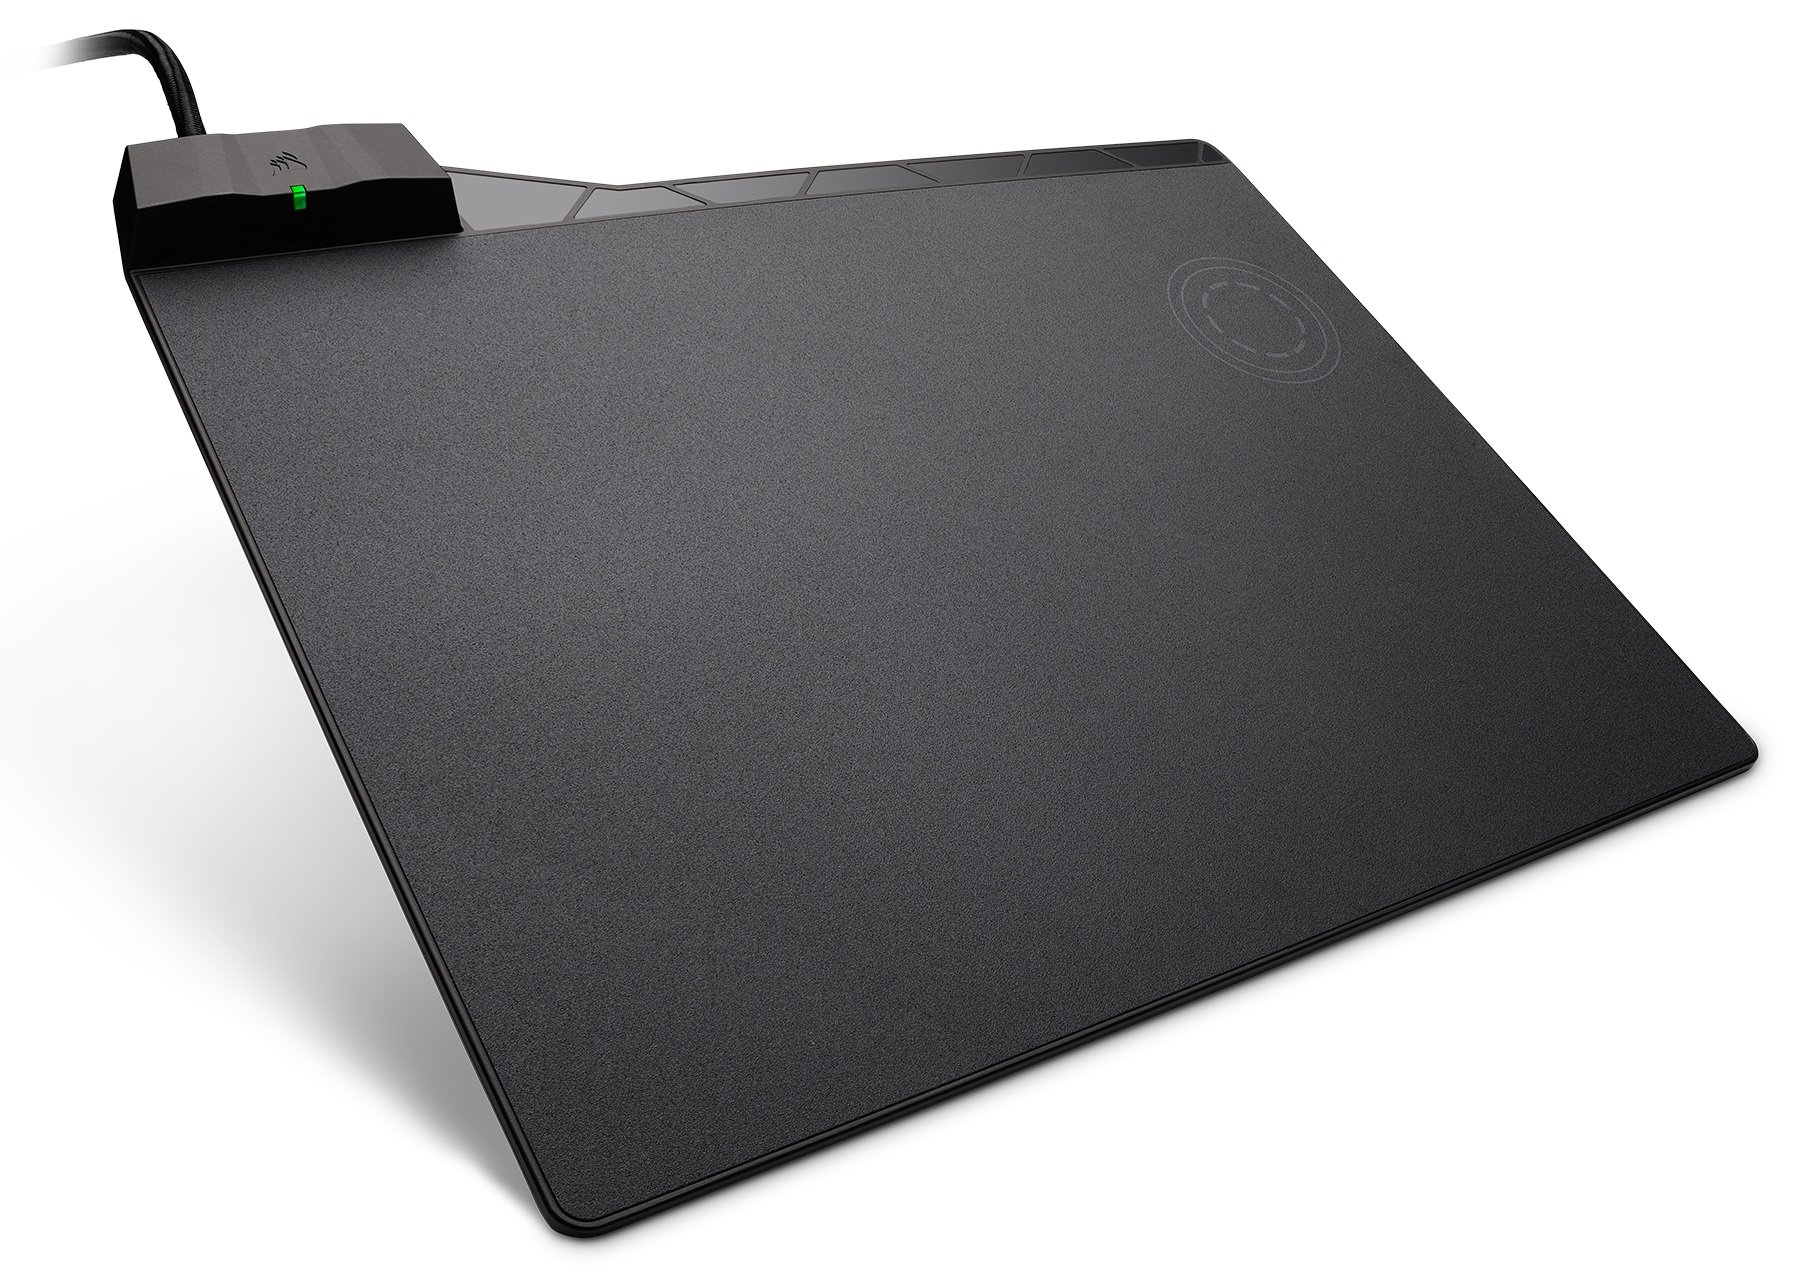 Corsair MM1000 Mouse Pad